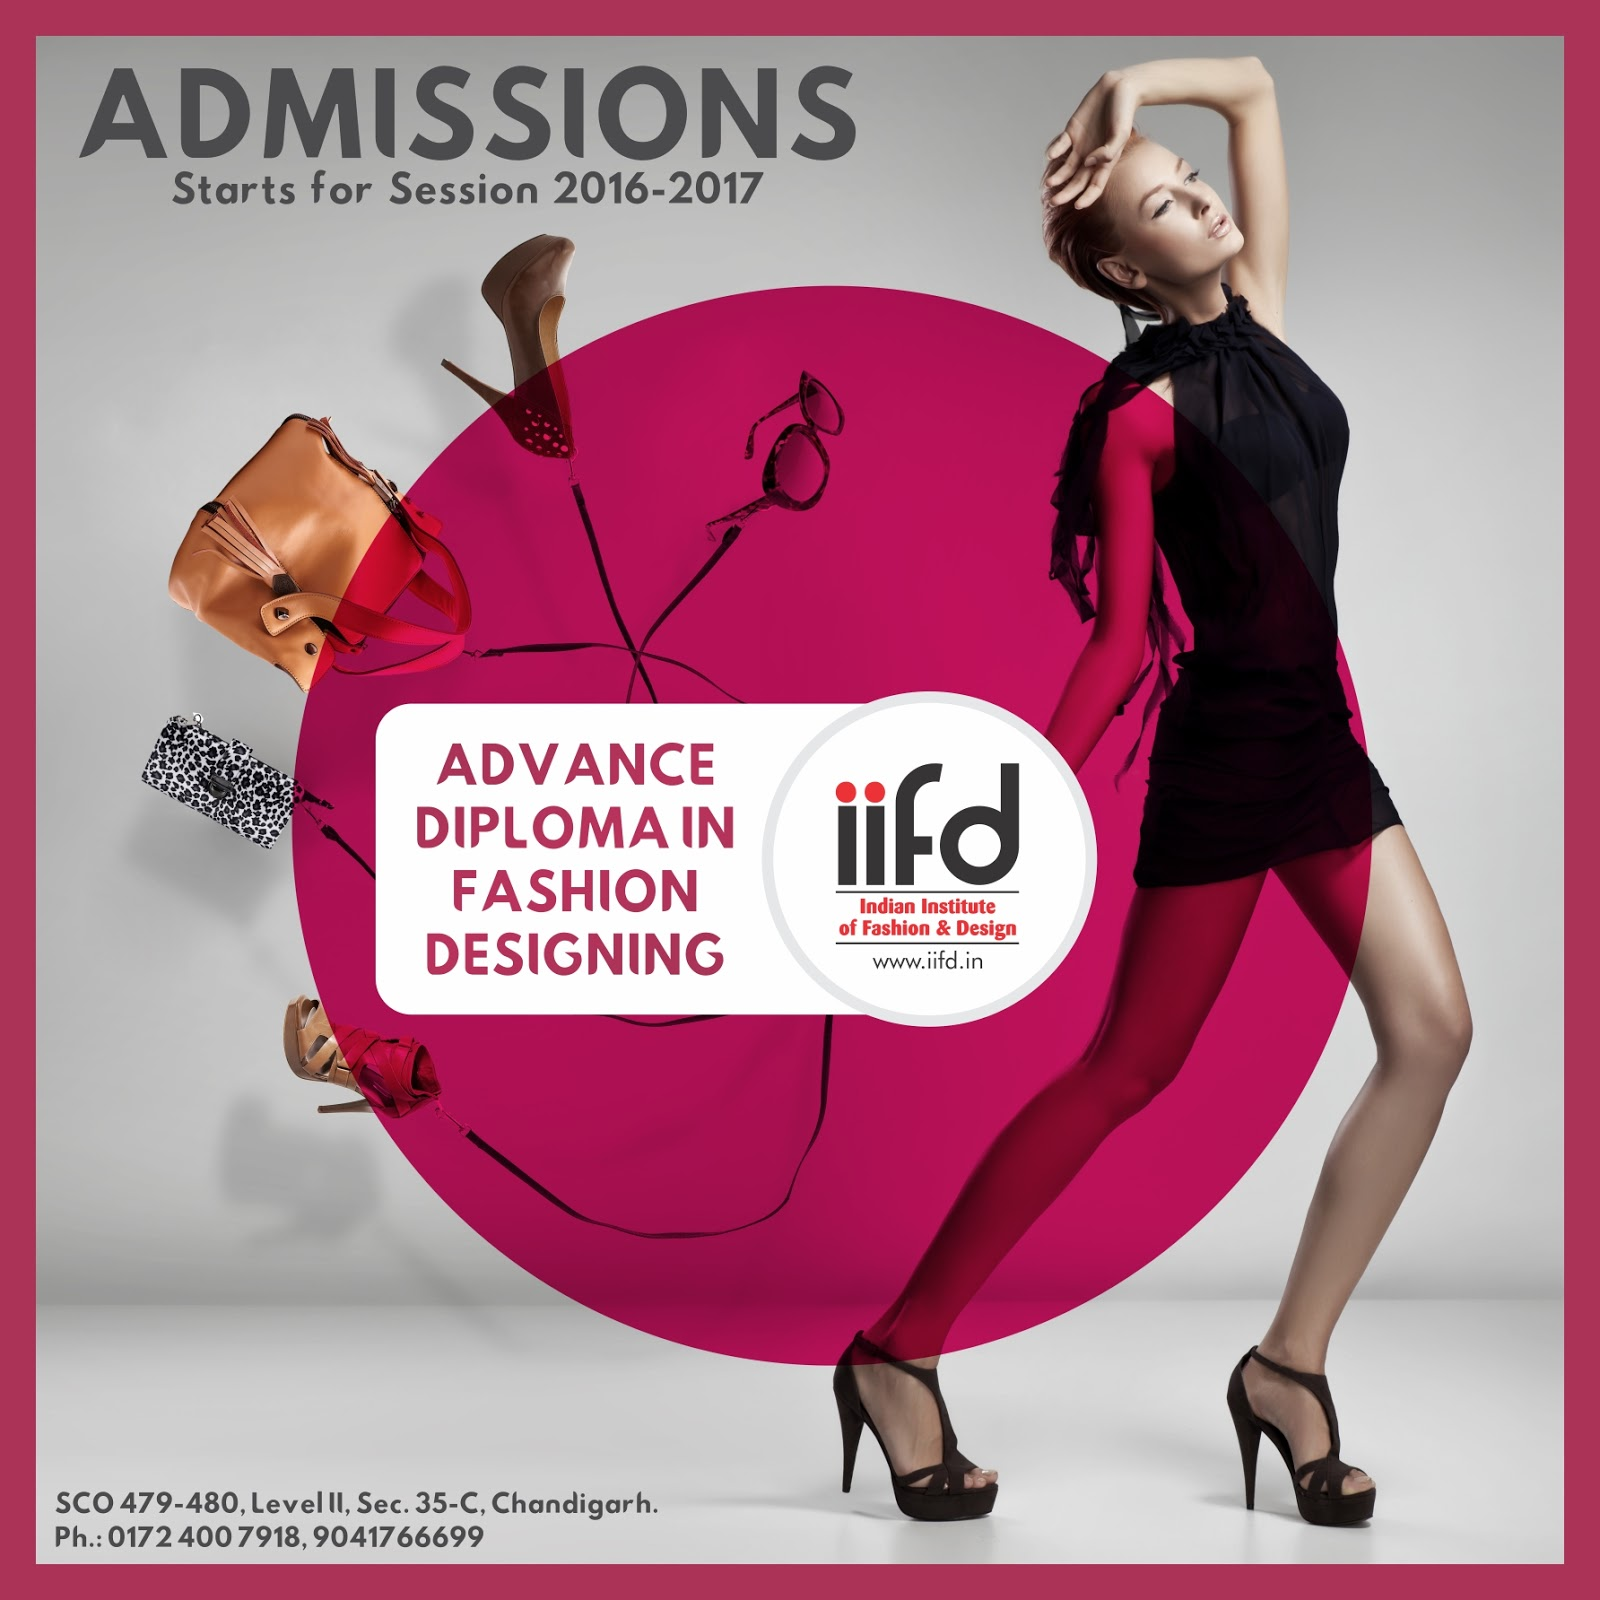 Iifd Best Fashion Designing Courses Institute In Chandigarh Punjab What You Need To Be Fashion Designer